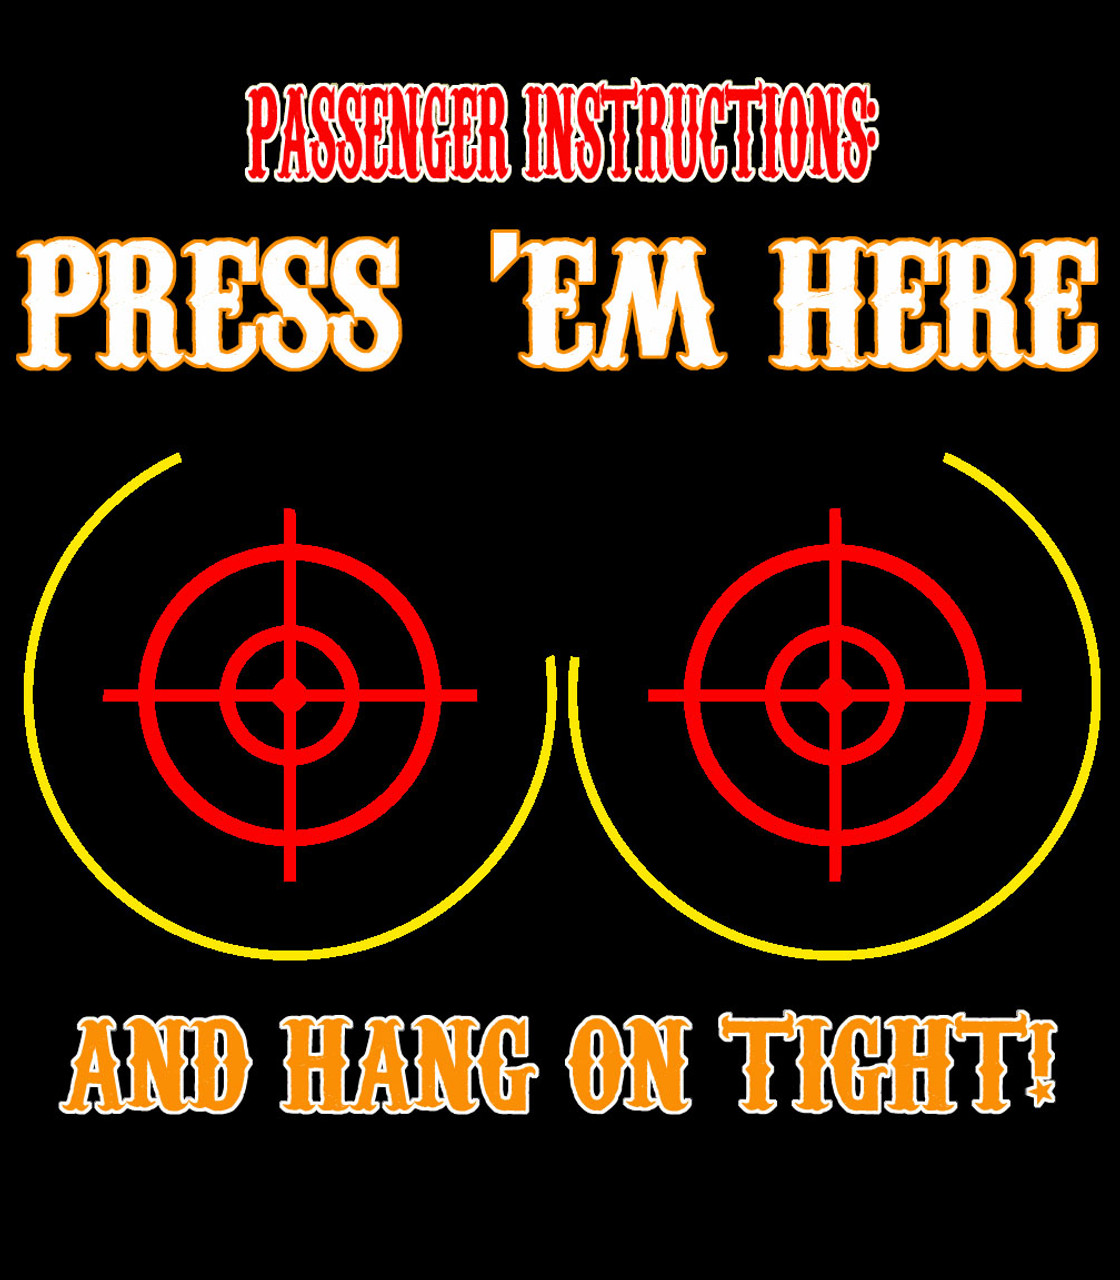 ce0075fa ... Passenger Instructions Press 'em Here Hang on Tight T-SHIRT - New Design  ...